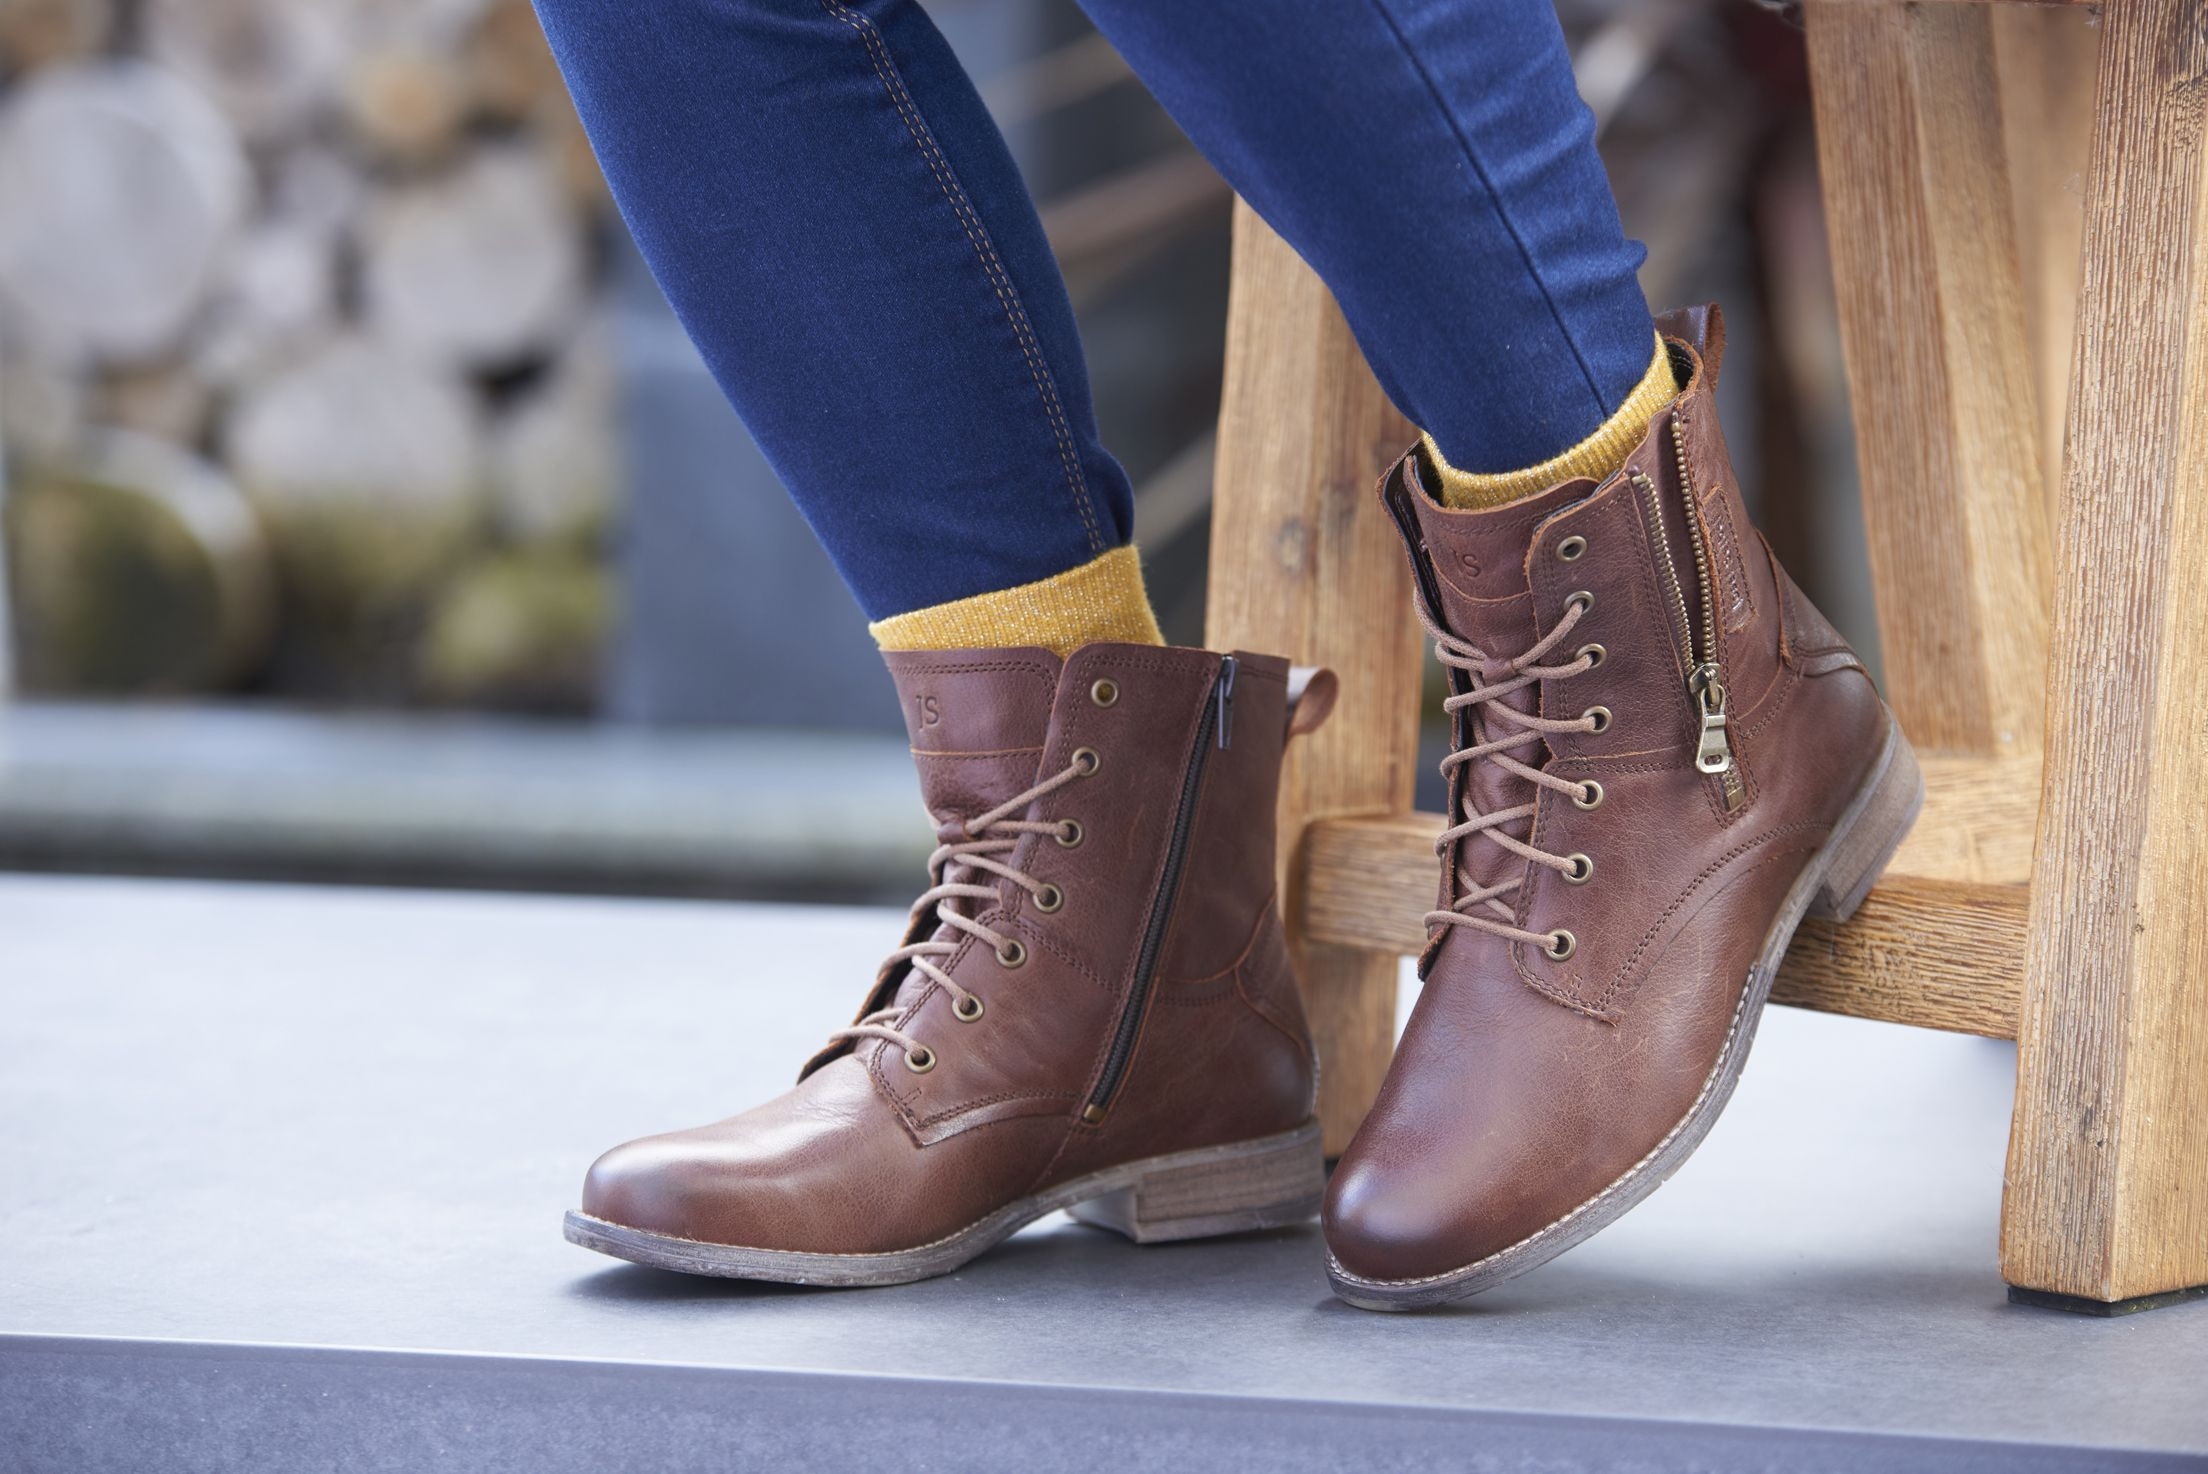 a9e45d646431d Sienna 69 | Sienna Boots | Boots, Josef seibel, Leather ankle boots